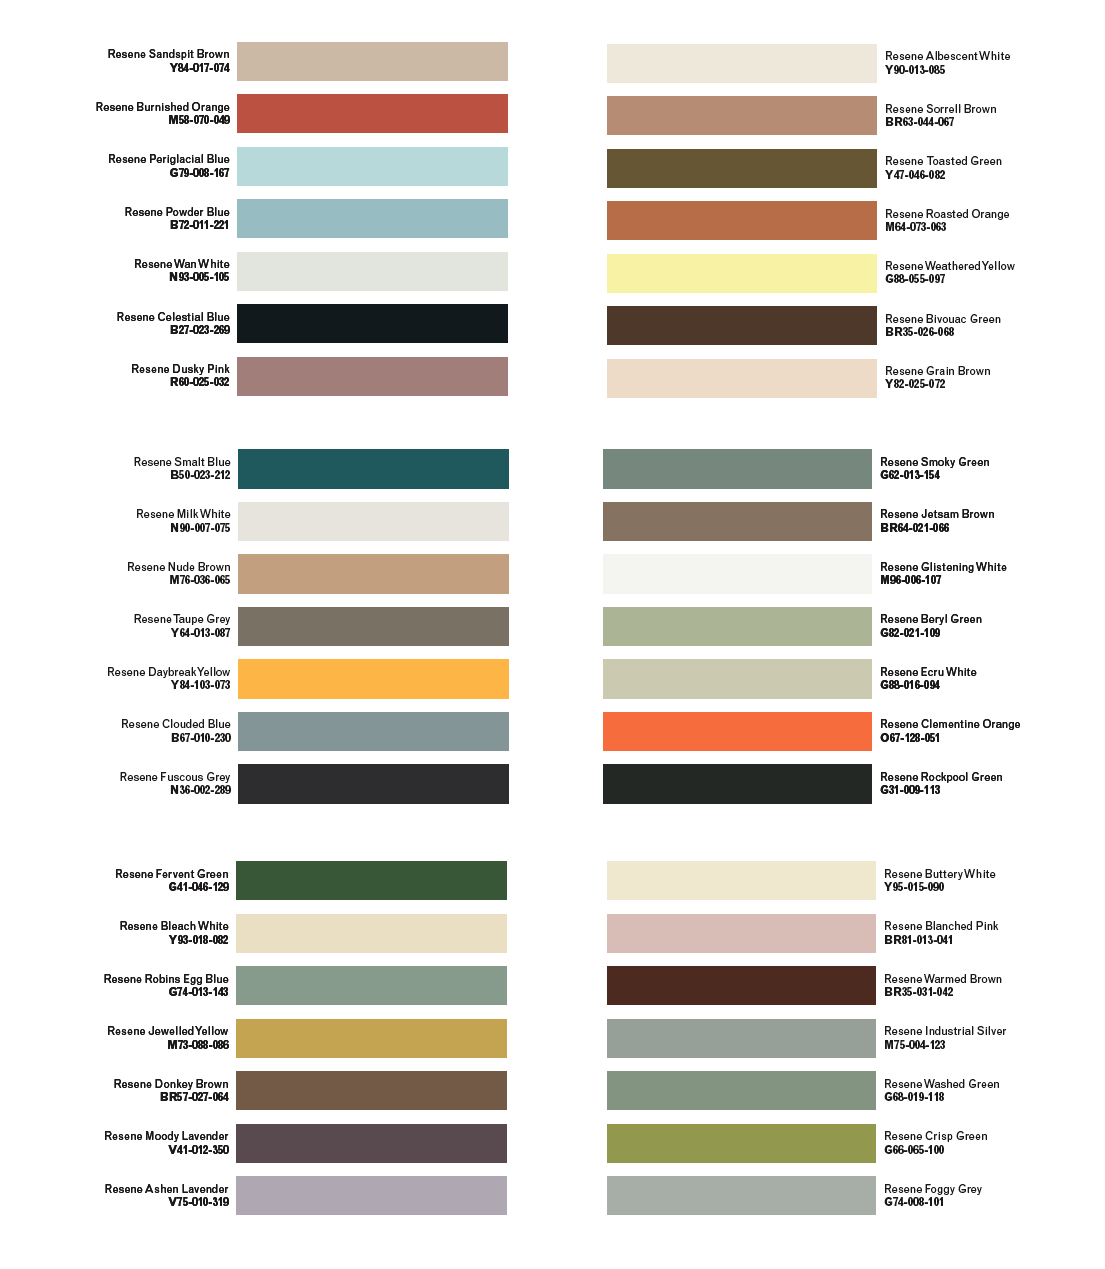 Mad for mid century resene mid century modern interior paint colors mad for mid century resene mid century modern interior paint colors fandeluxe Images